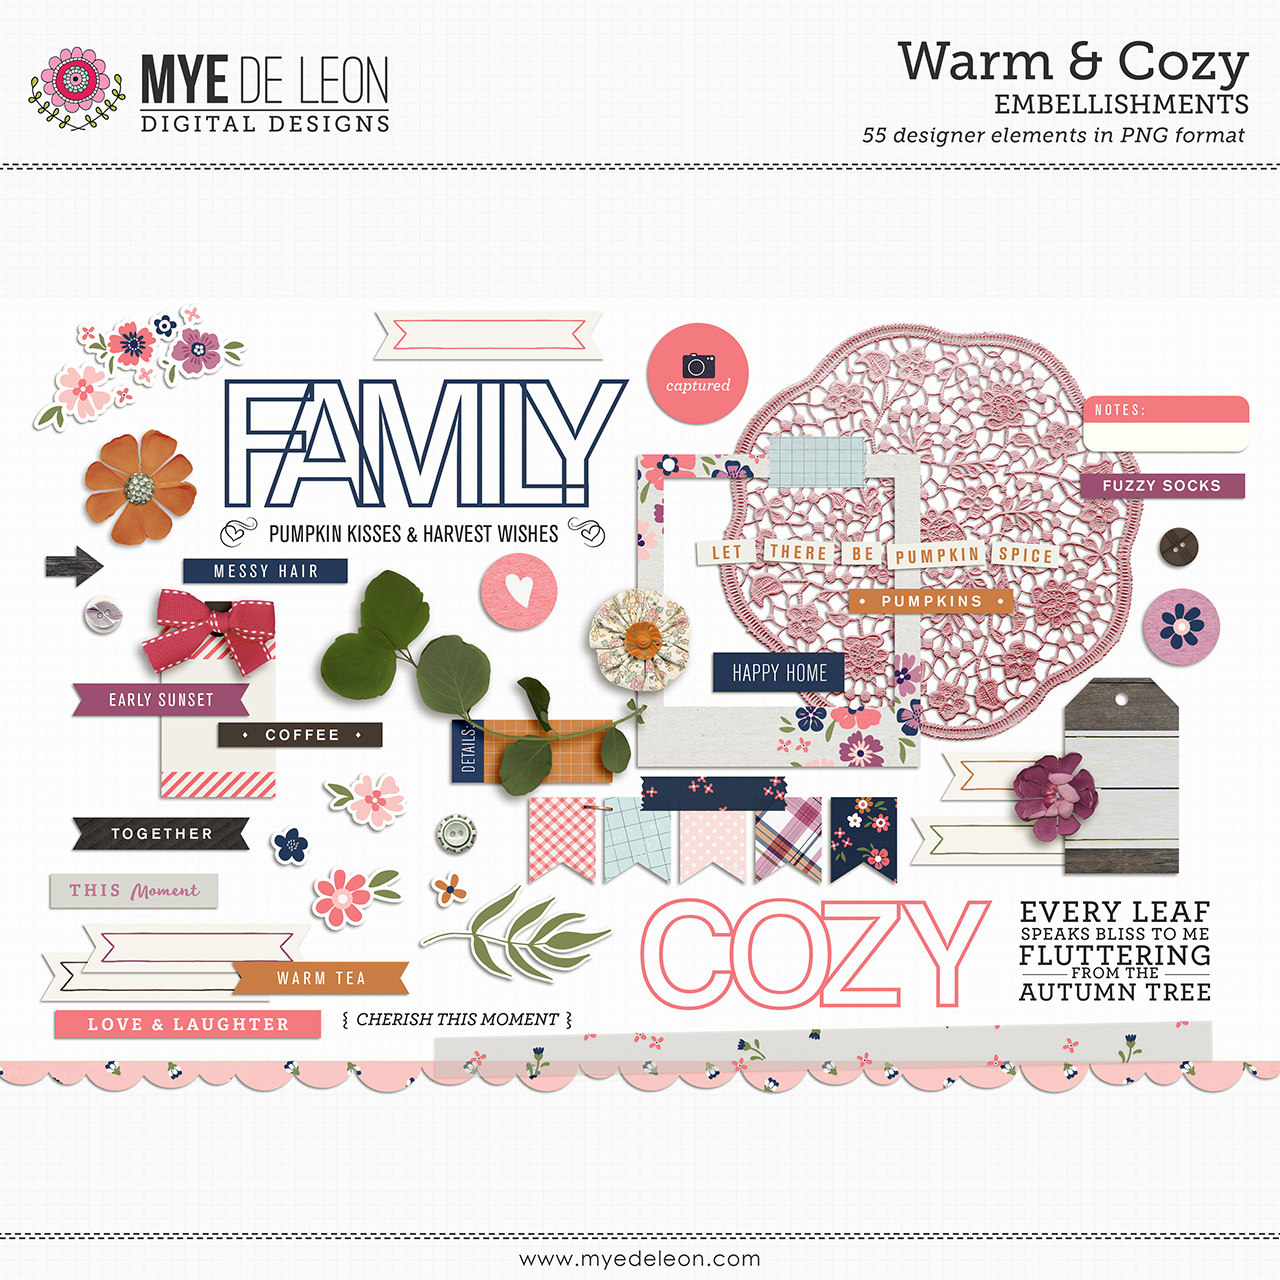 Warm & Cozy | Complete Collection